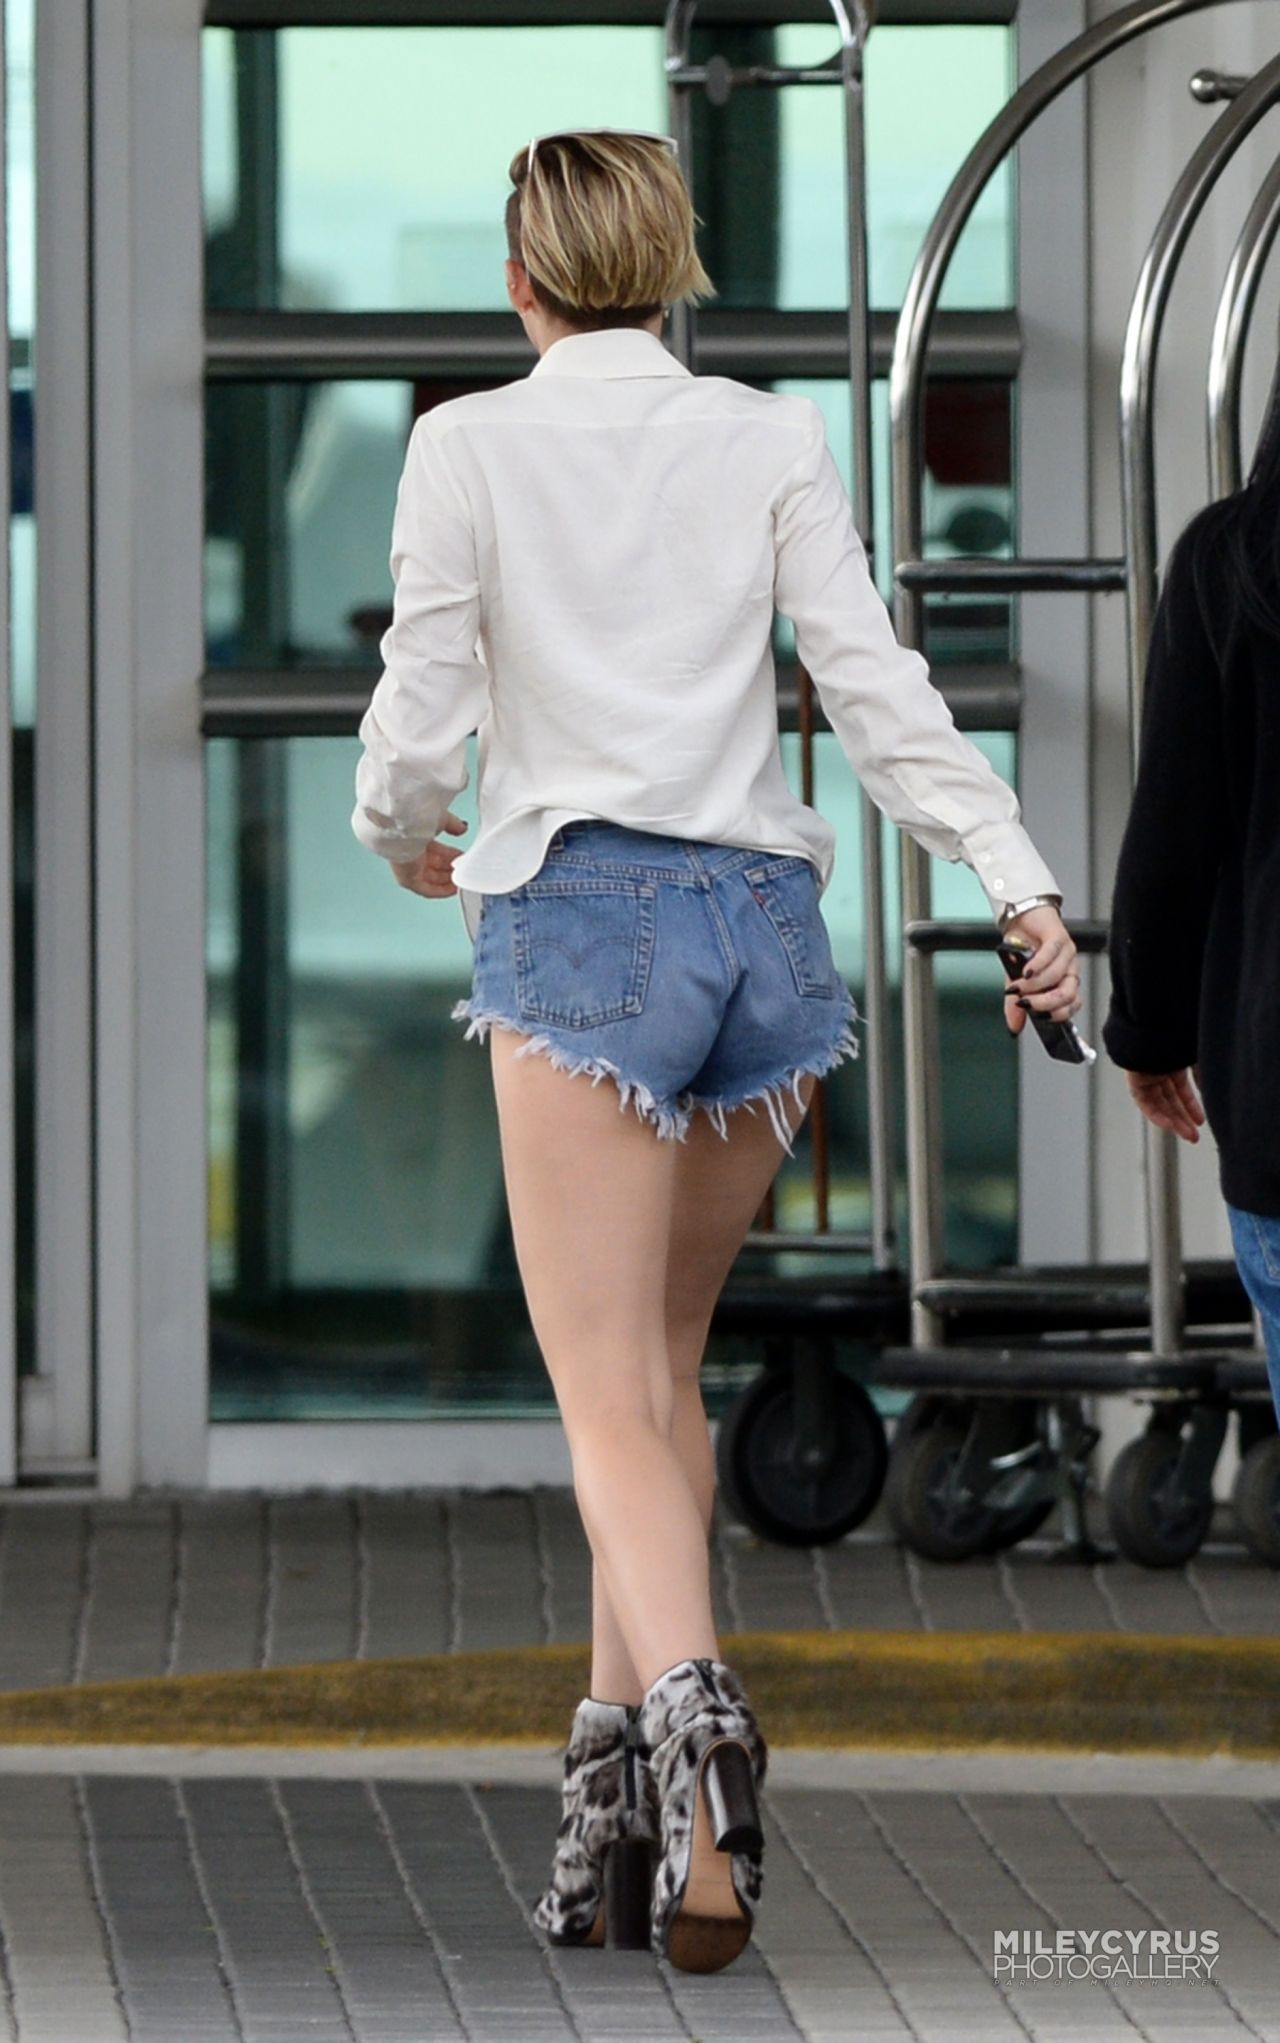 Miley Cyrus Street Style In Denim Shorts In Miami